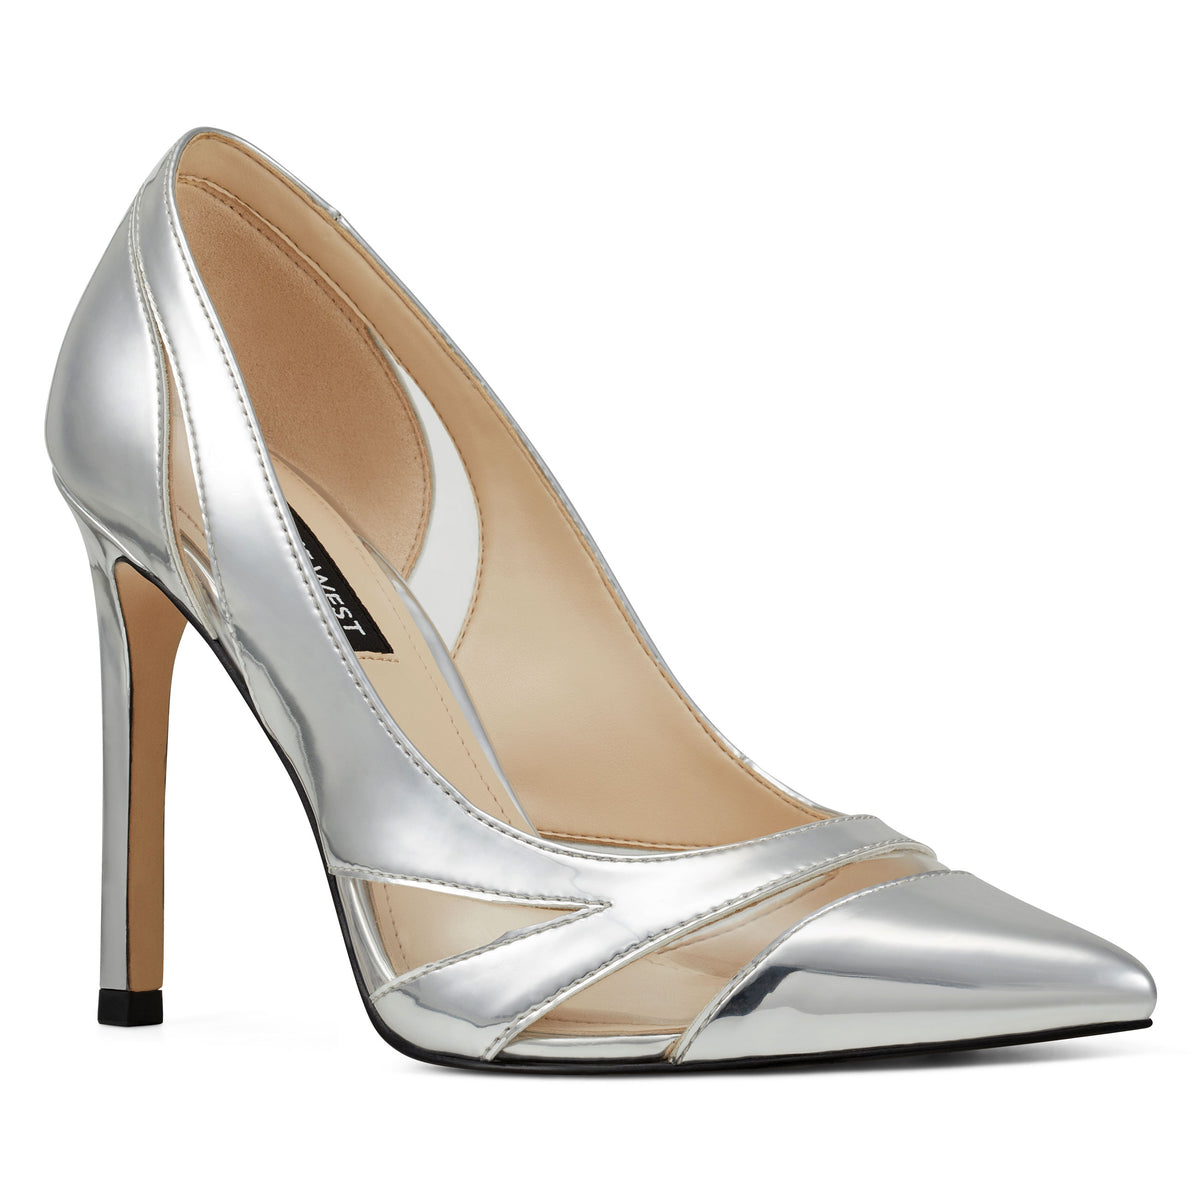 tamika-pointy-toe-pumps-in-silver-clear